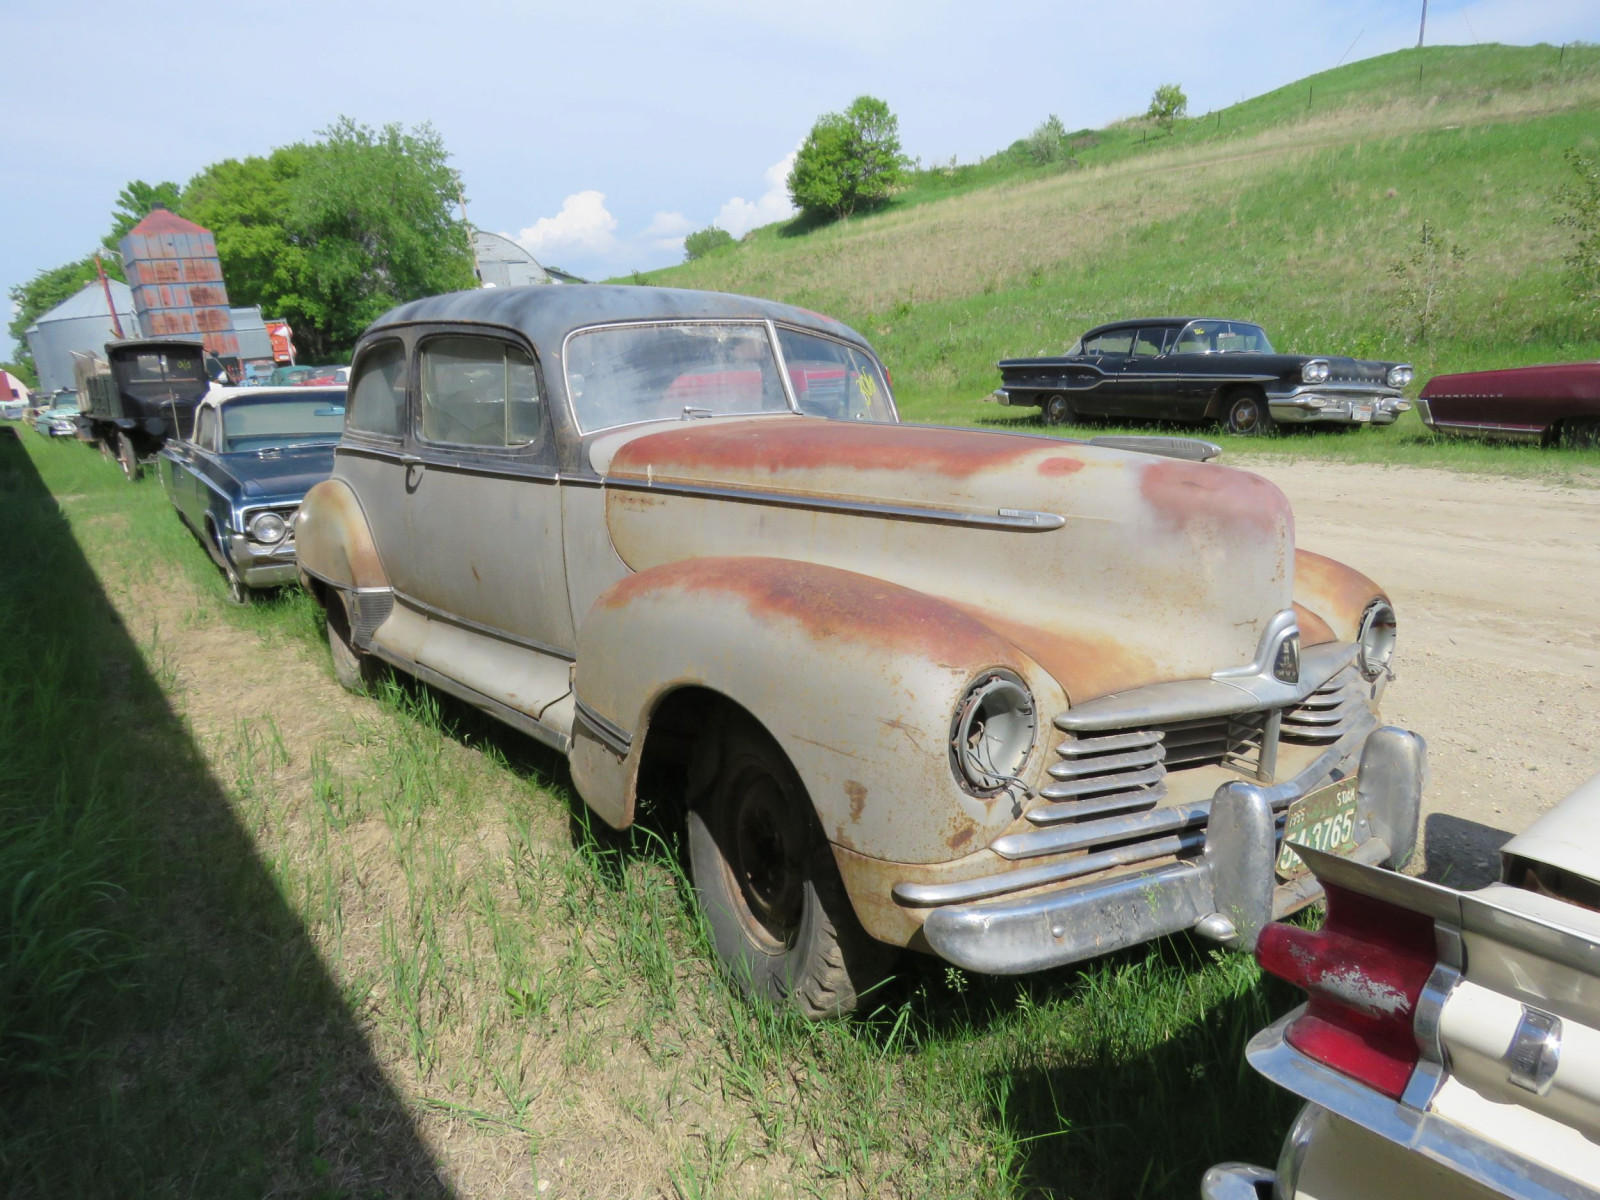 1946 Hudson 2dr Sedan for Rod or Restore - Image 2